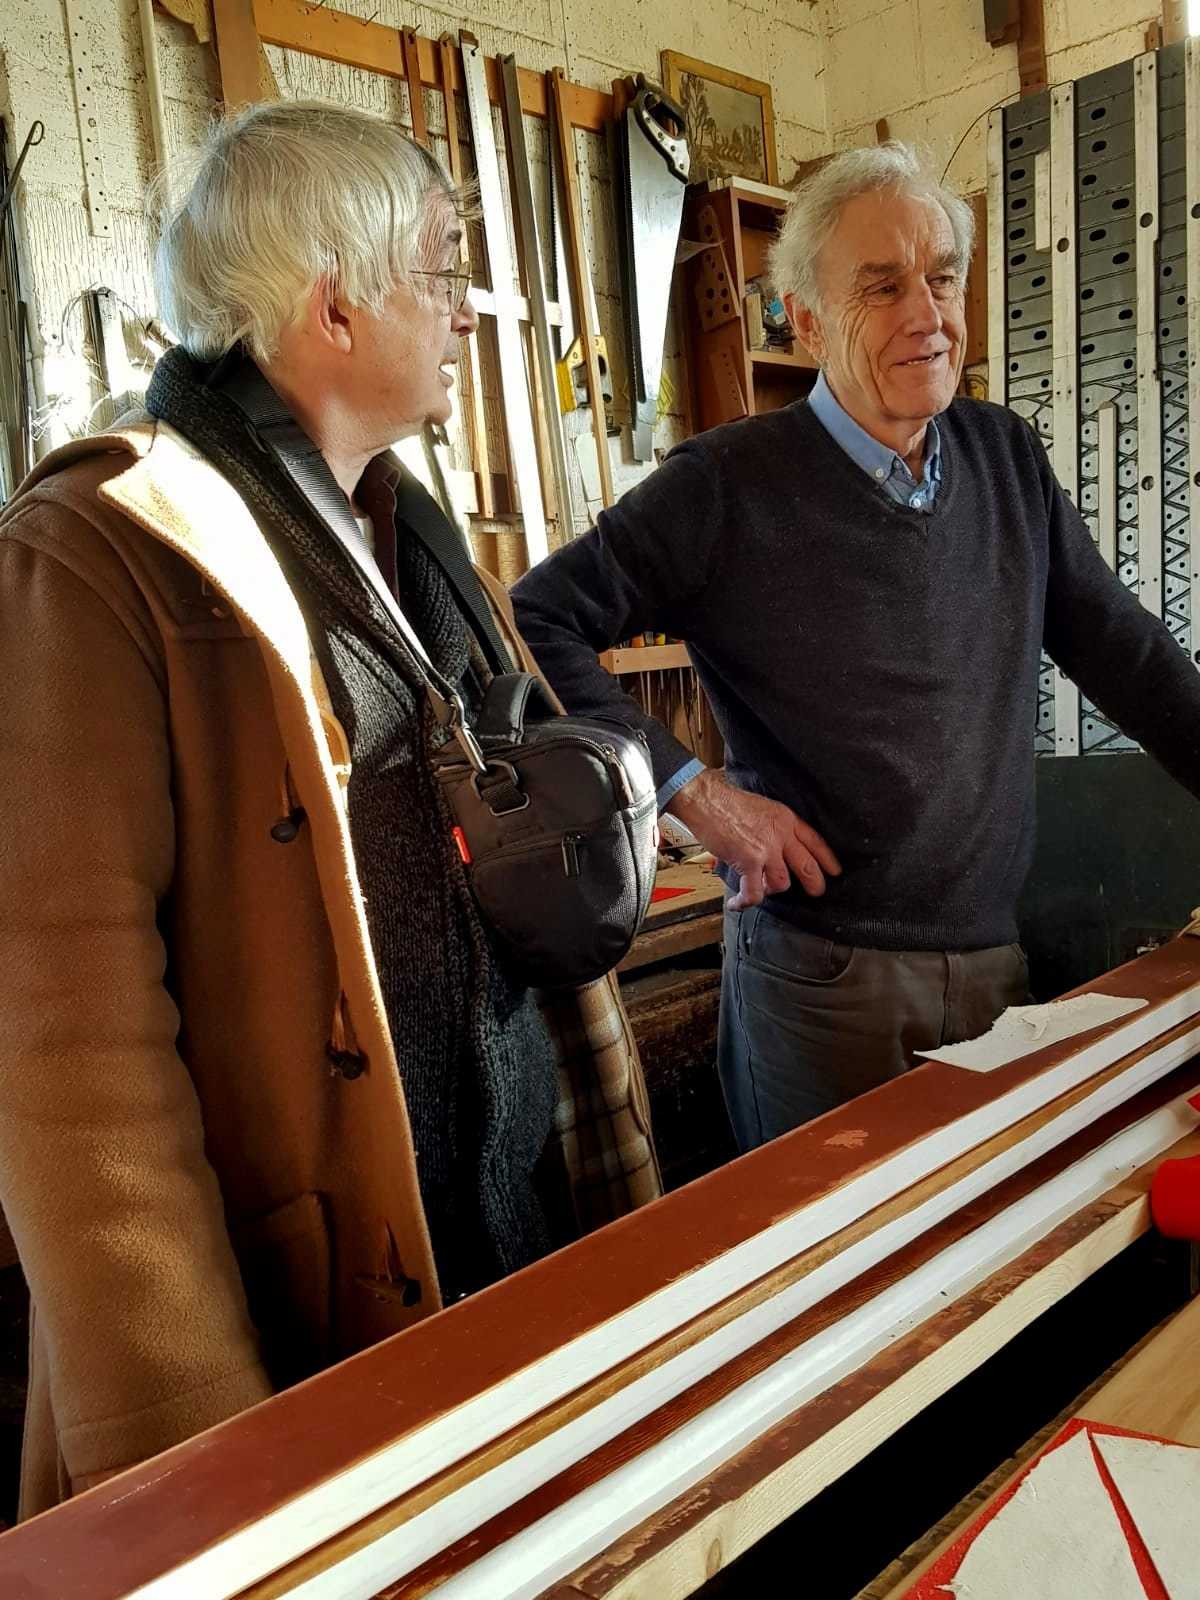 Our church organist with Rodney Briscoe who has worked at Boggis since 1961.